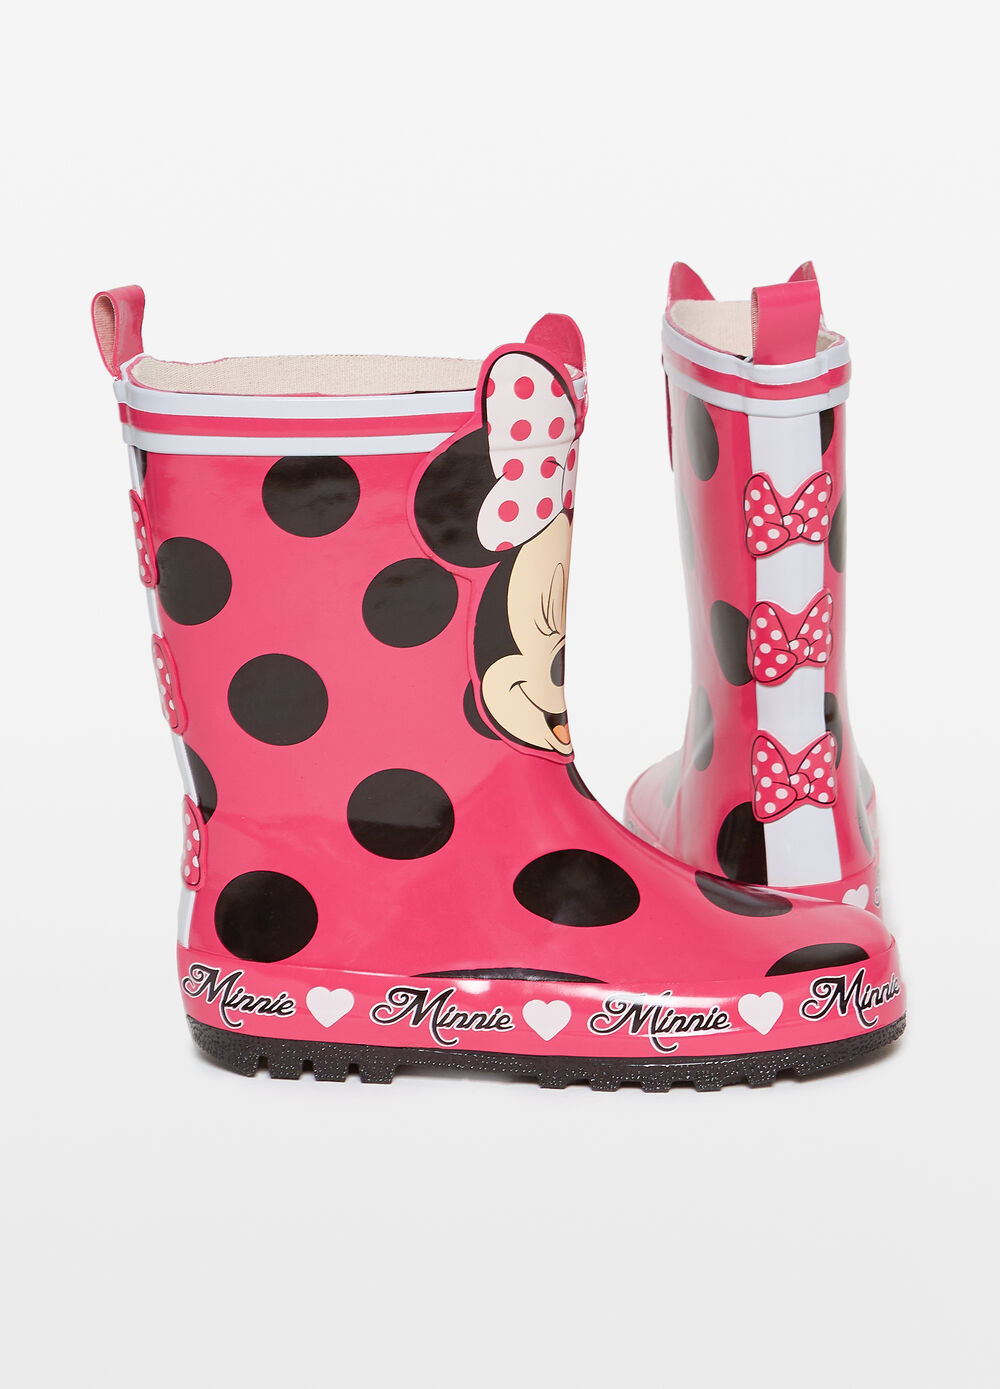 Minnie Mouse rain boots with polka dots